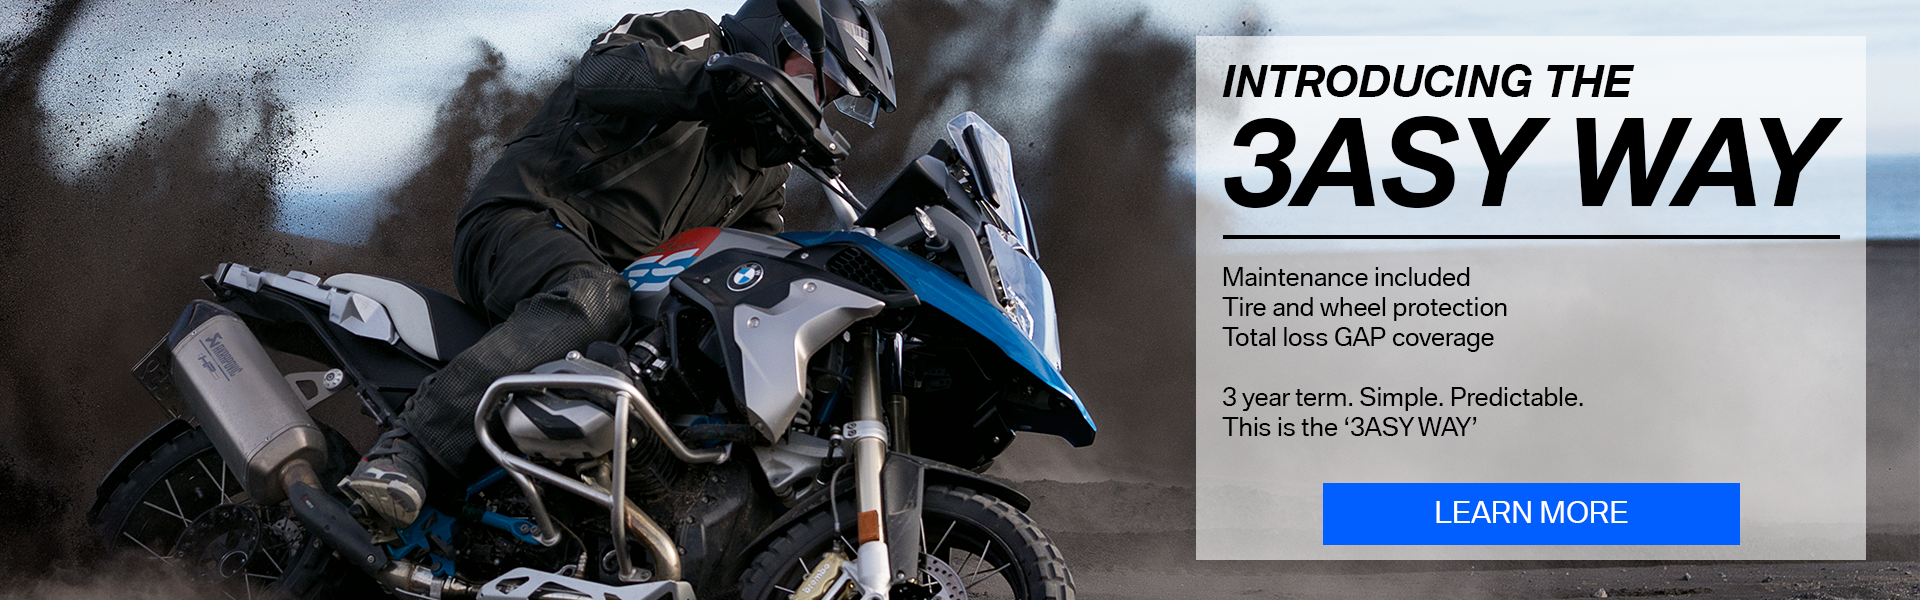 BMW Motorcycle ownership simplified - the '3asy Way'! Contact us to learn more about this new, predictable way of purchasing and owning a new BMW Motorcycle. Maintenance included!